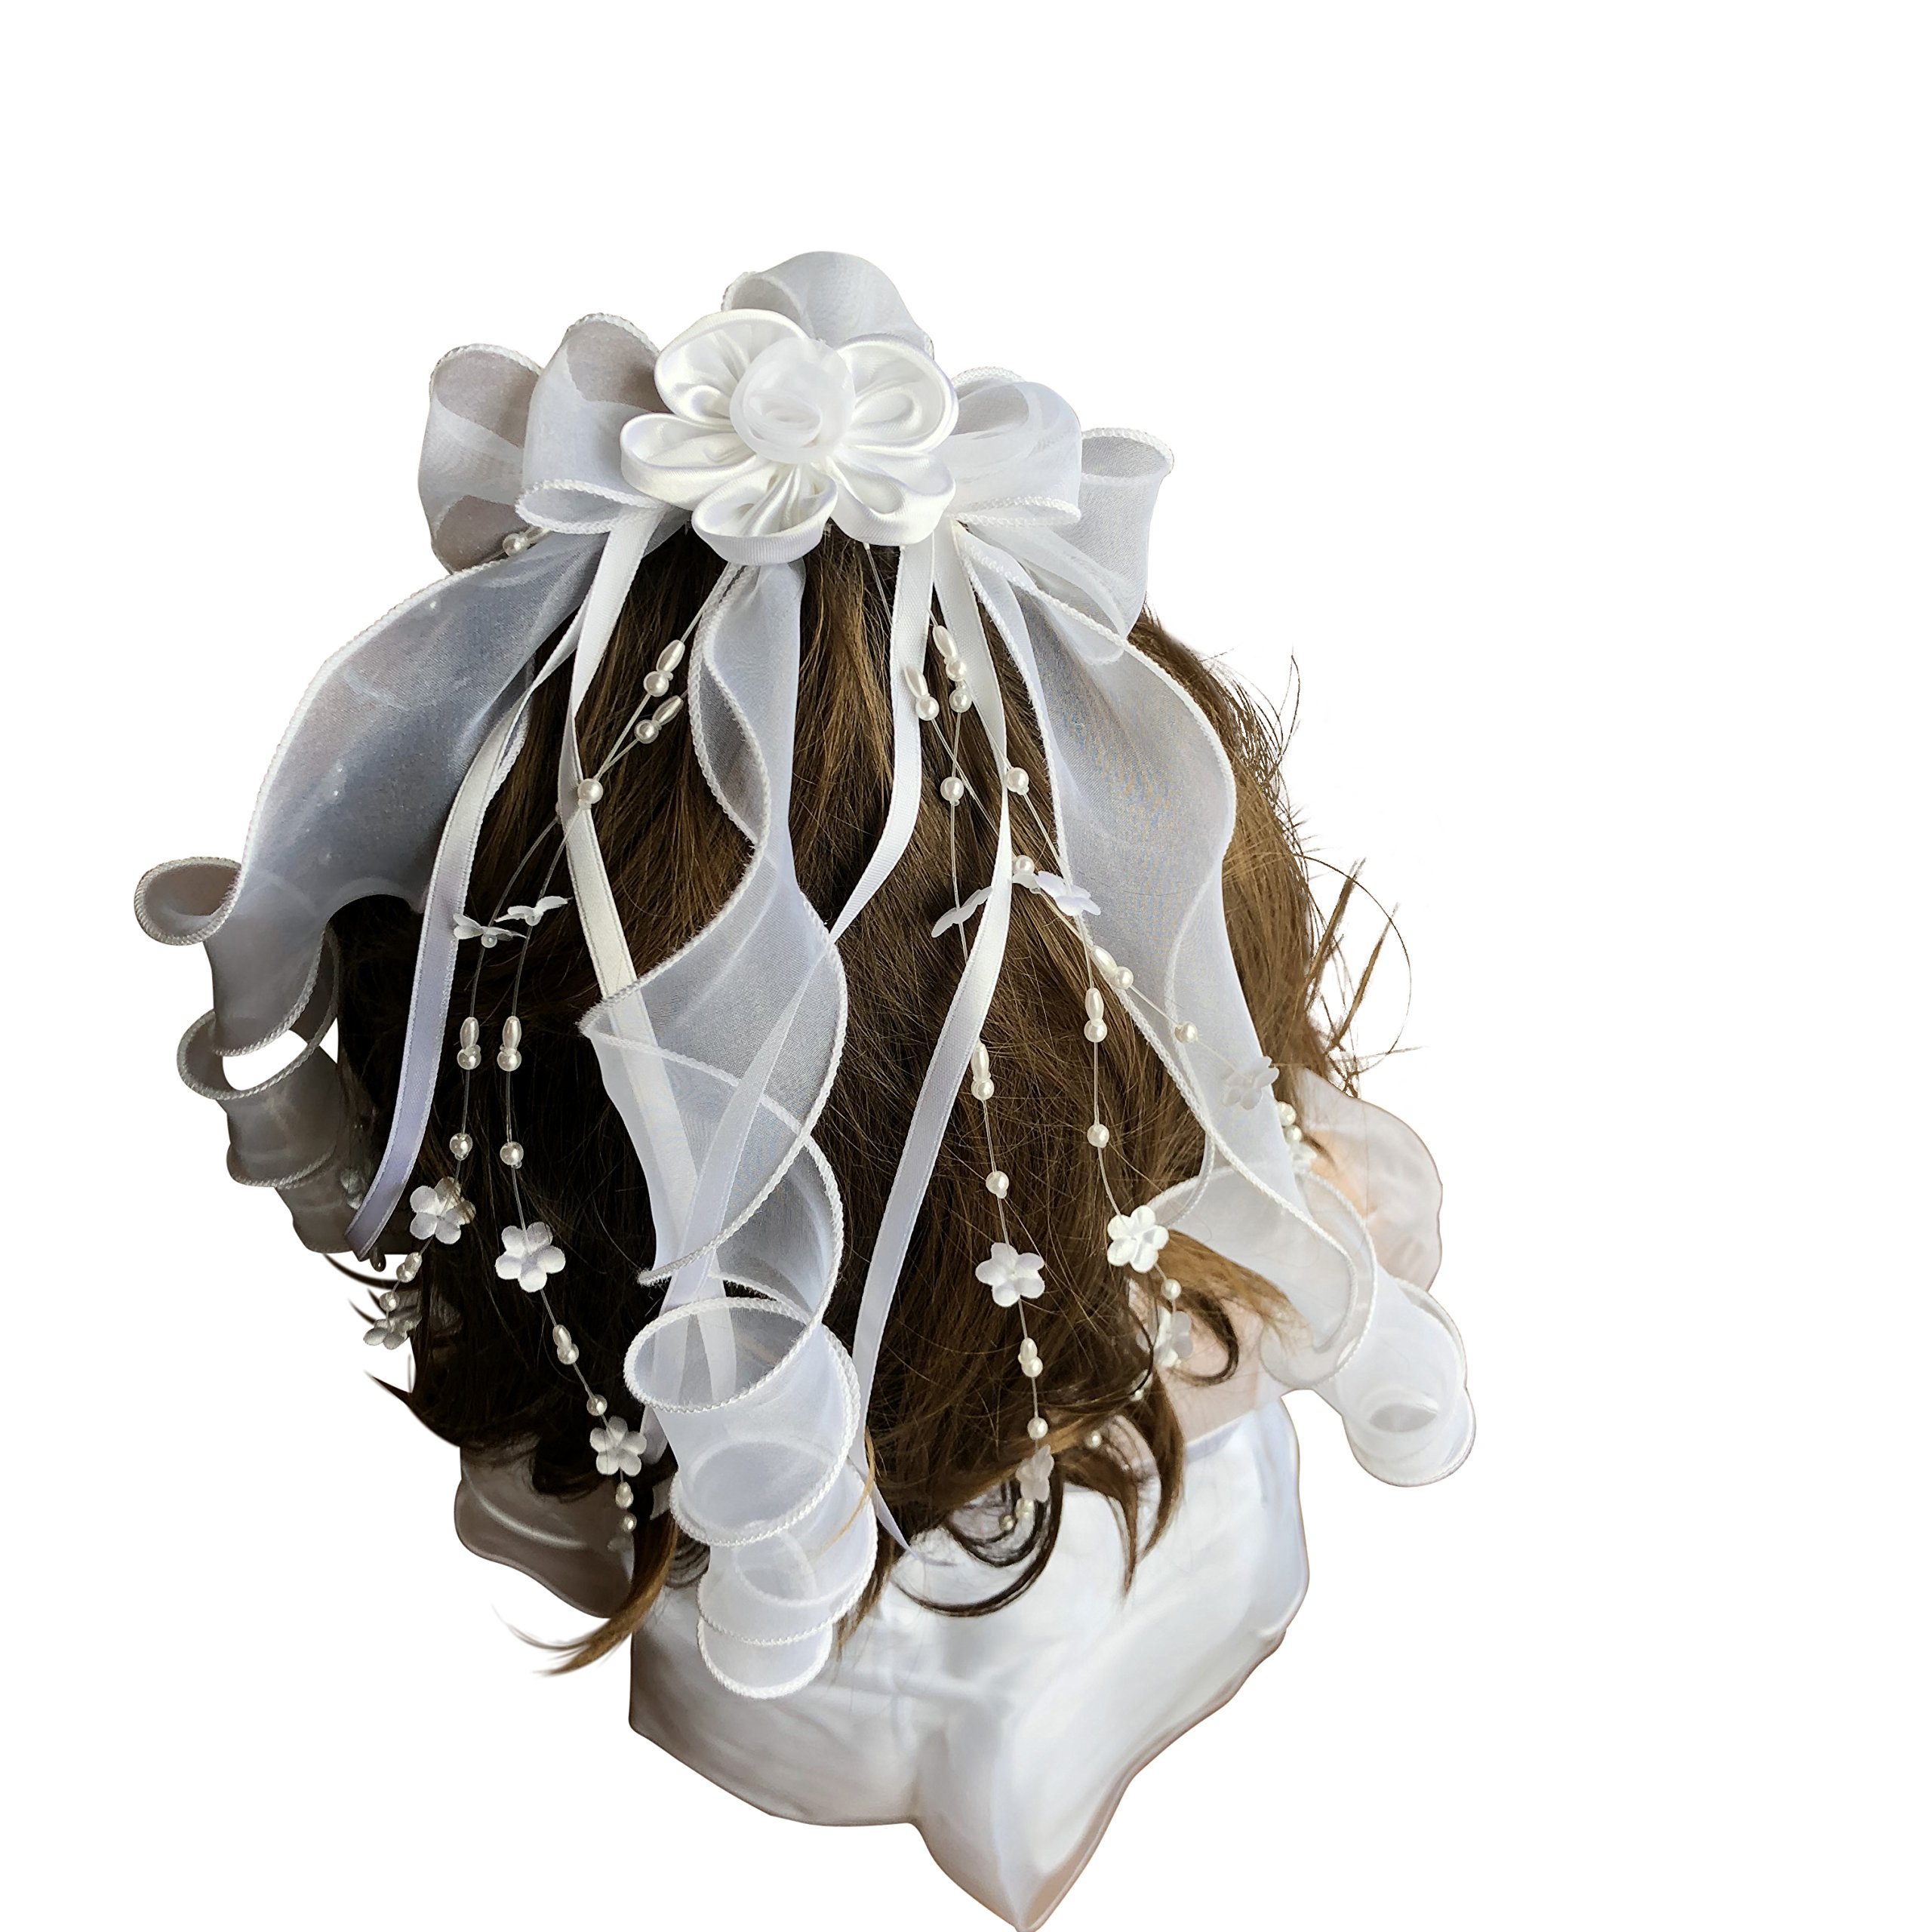 First Communion Veil White Foral Ribbon with Pearl from VGI by VGI (Image #5)